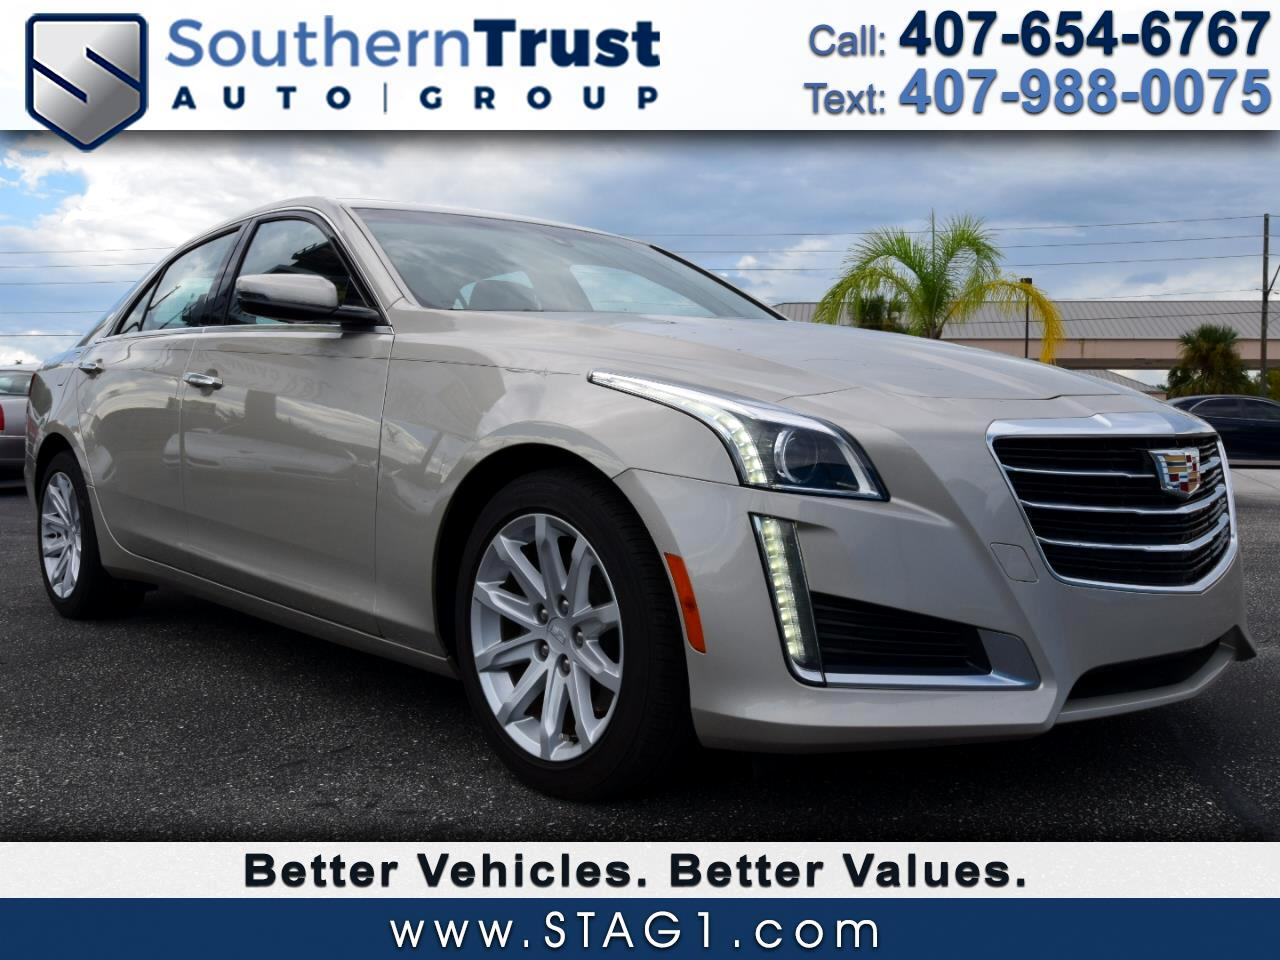 Cadillac CTS Sedan 4dr Sdn 2.0L Turbo RWD 2016